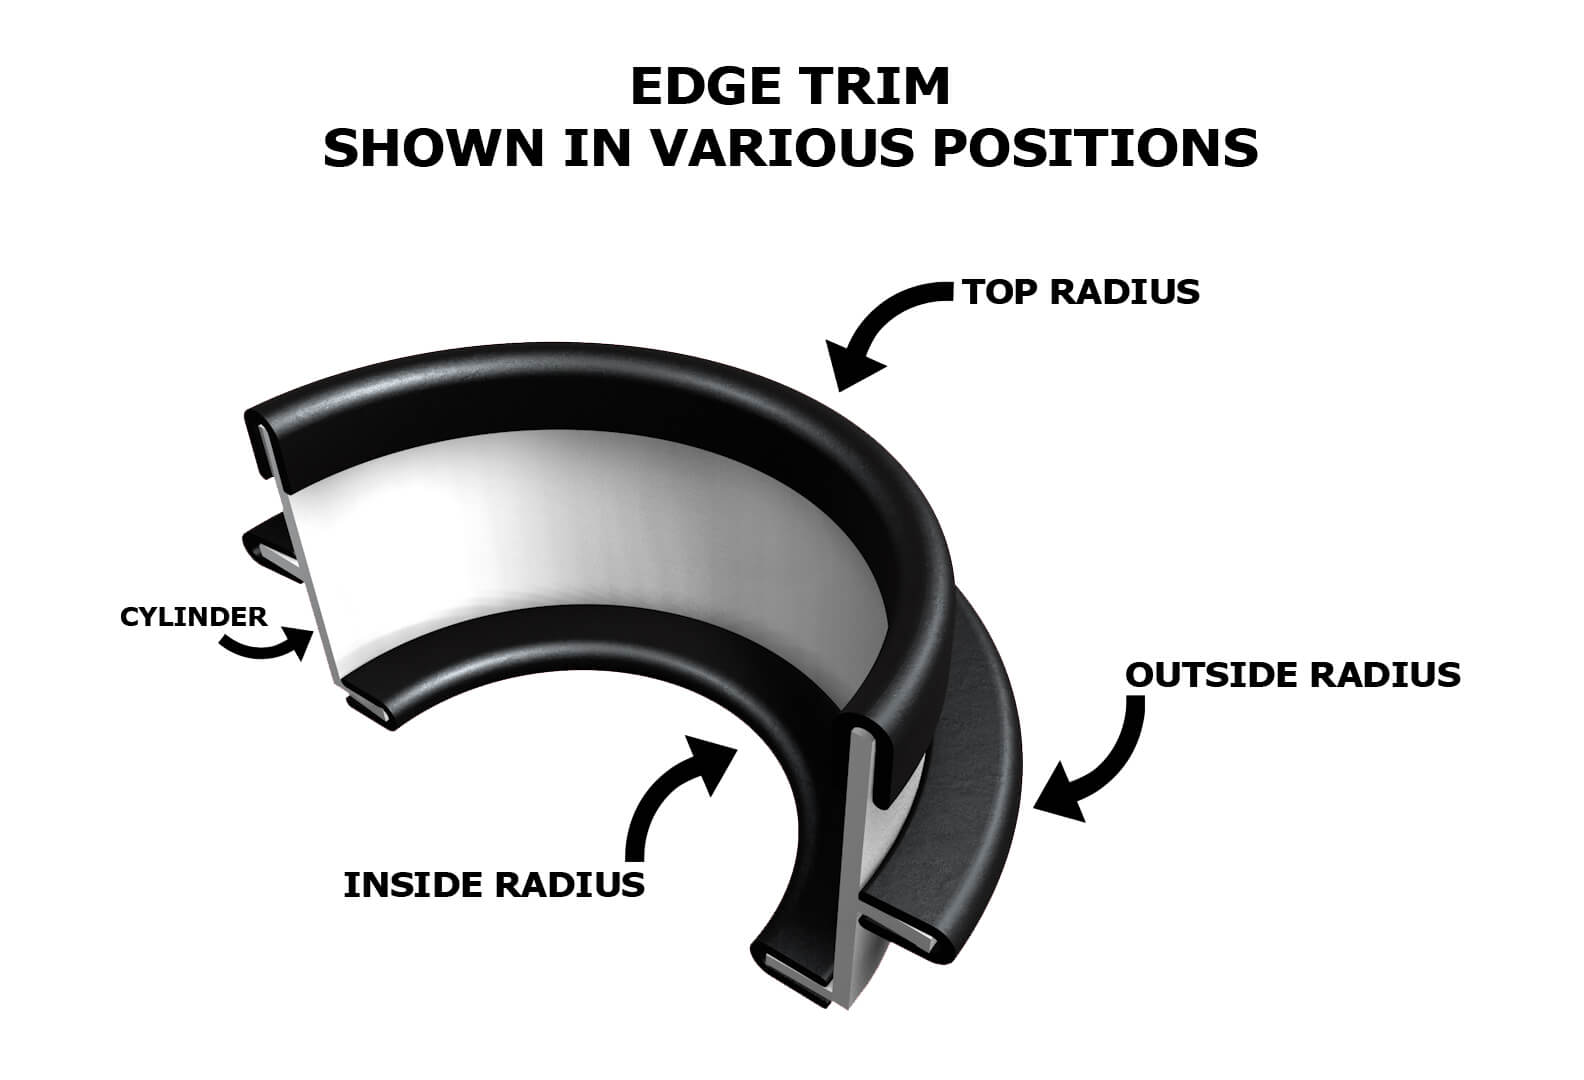 Diagram of rubber edge trim radii and cylinder